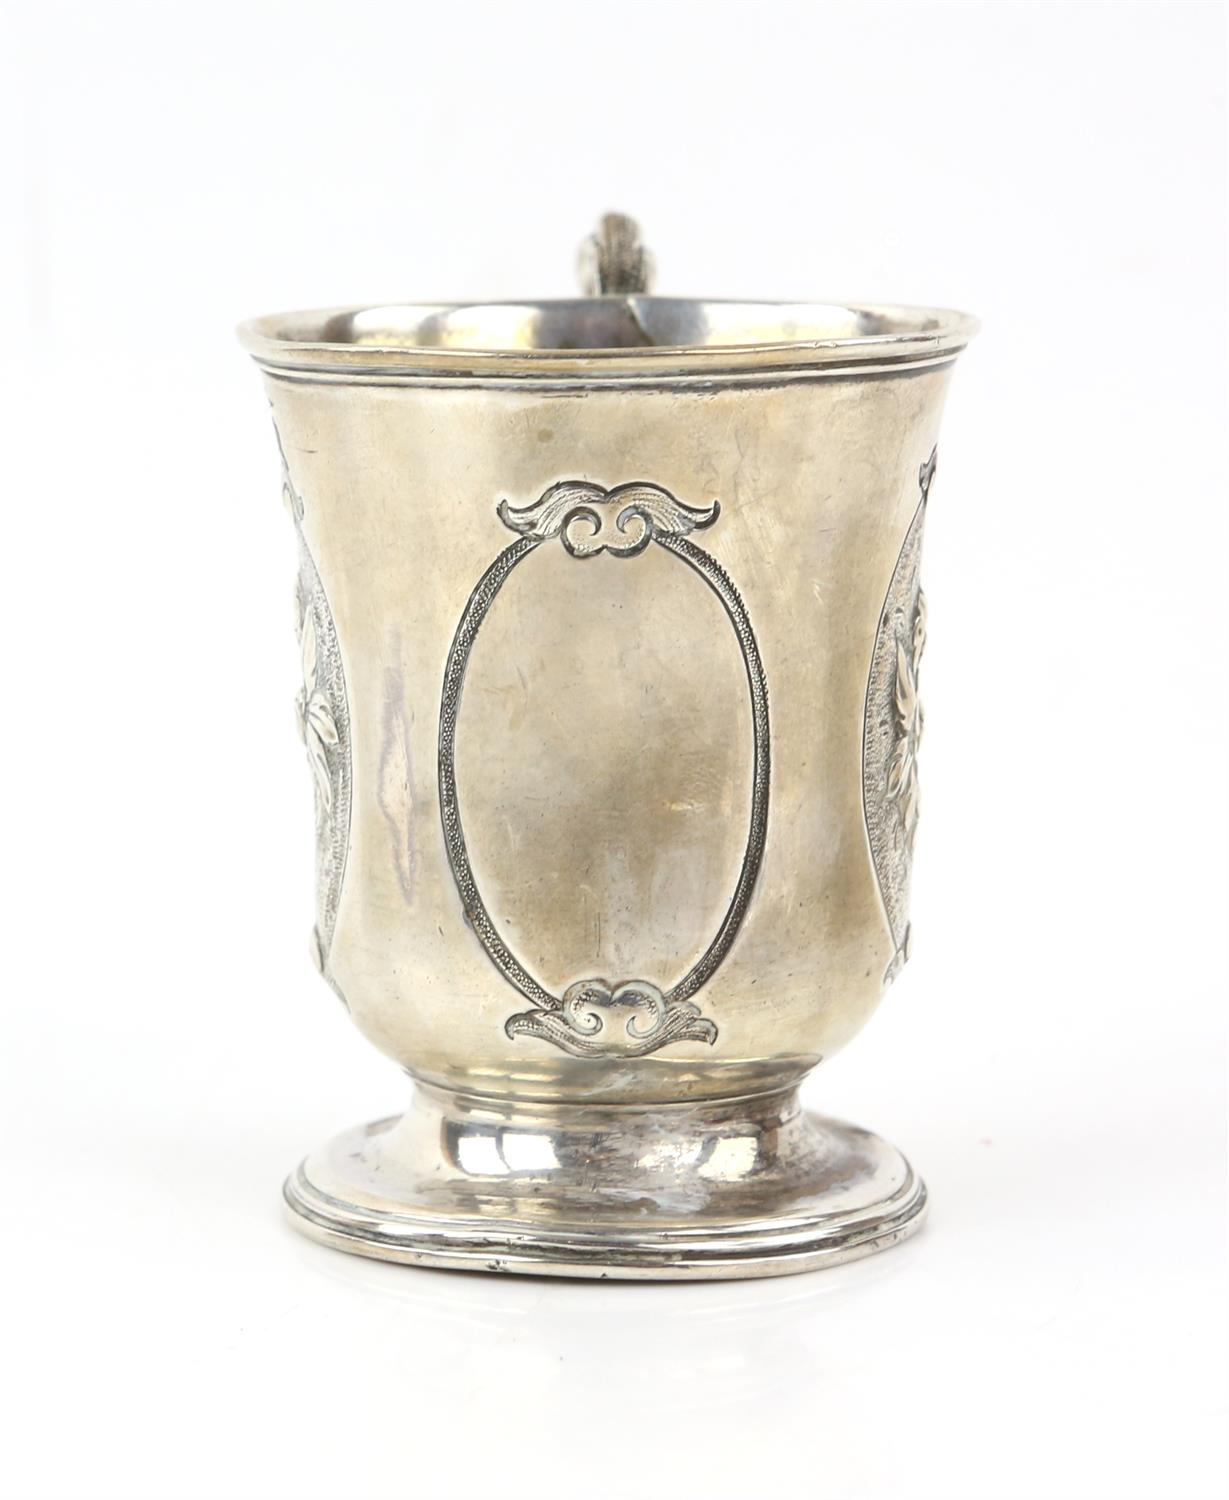 Victorian silver panelled cup/mug the two side panels embossed with a floral design and front panel - Image 2 of 5